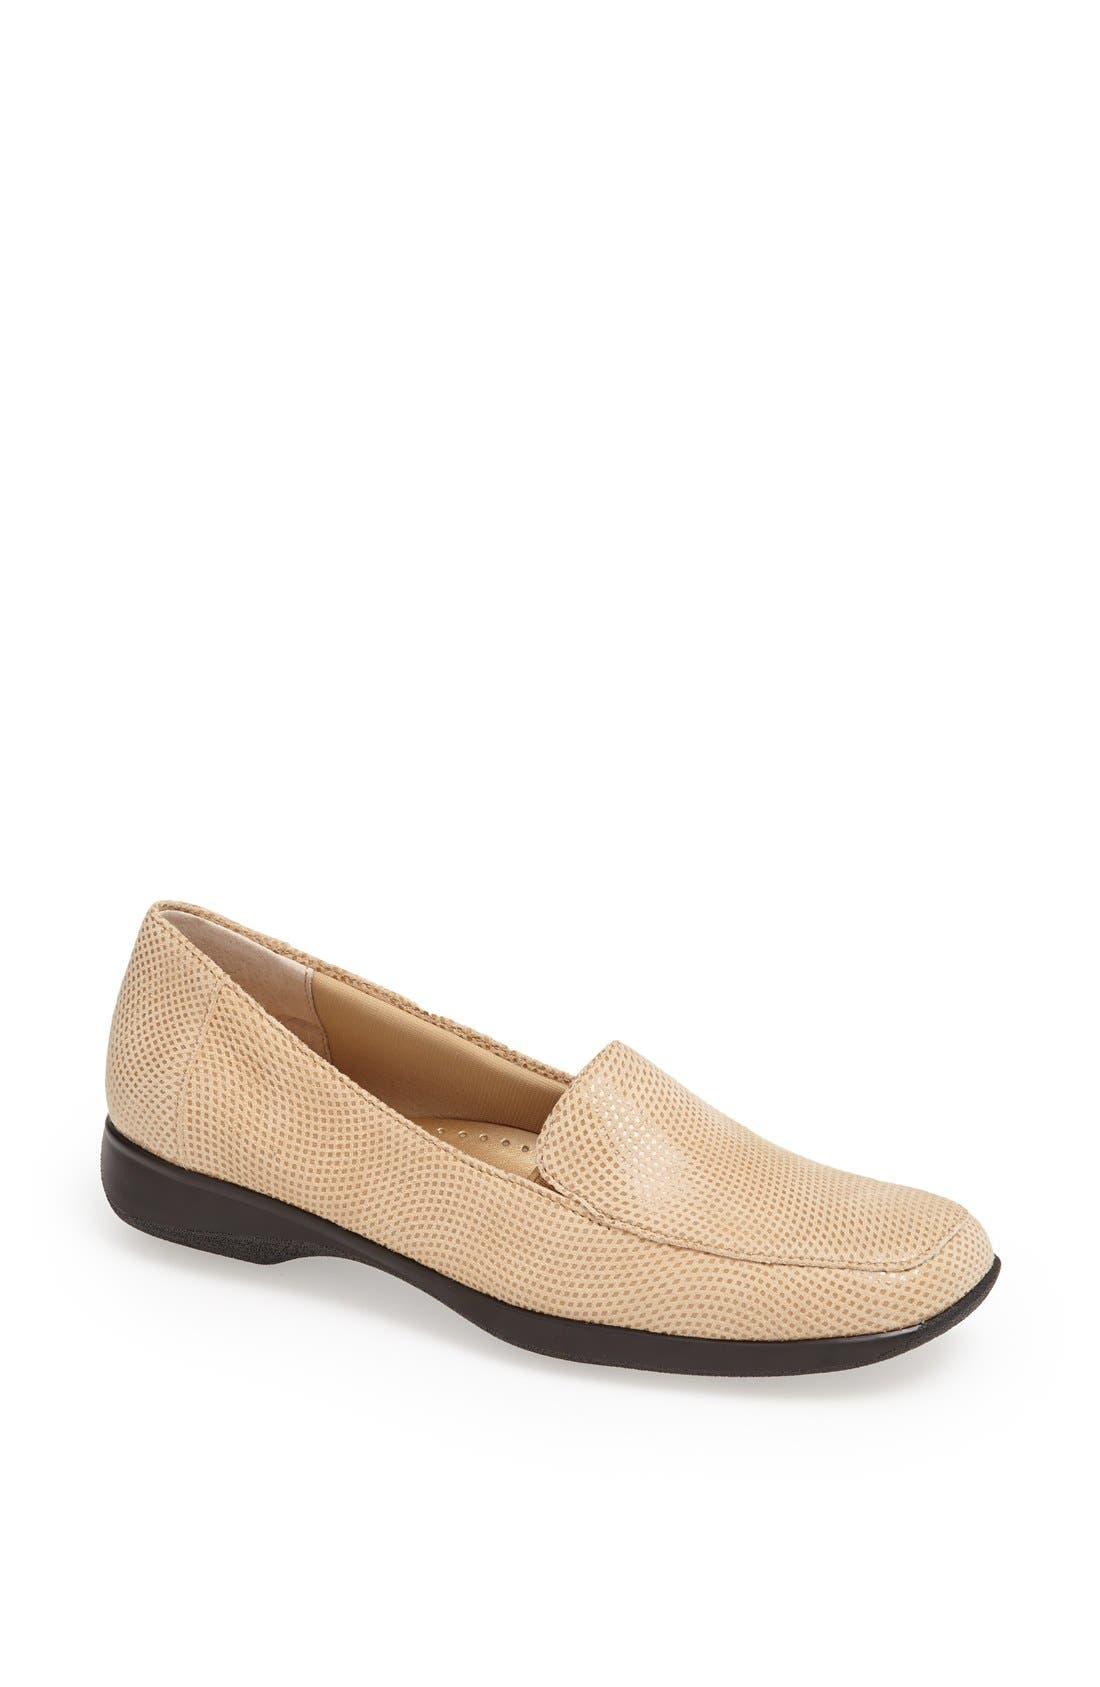 'Jenn' Loafer,                         Main,                         color, Nude Mini Dot